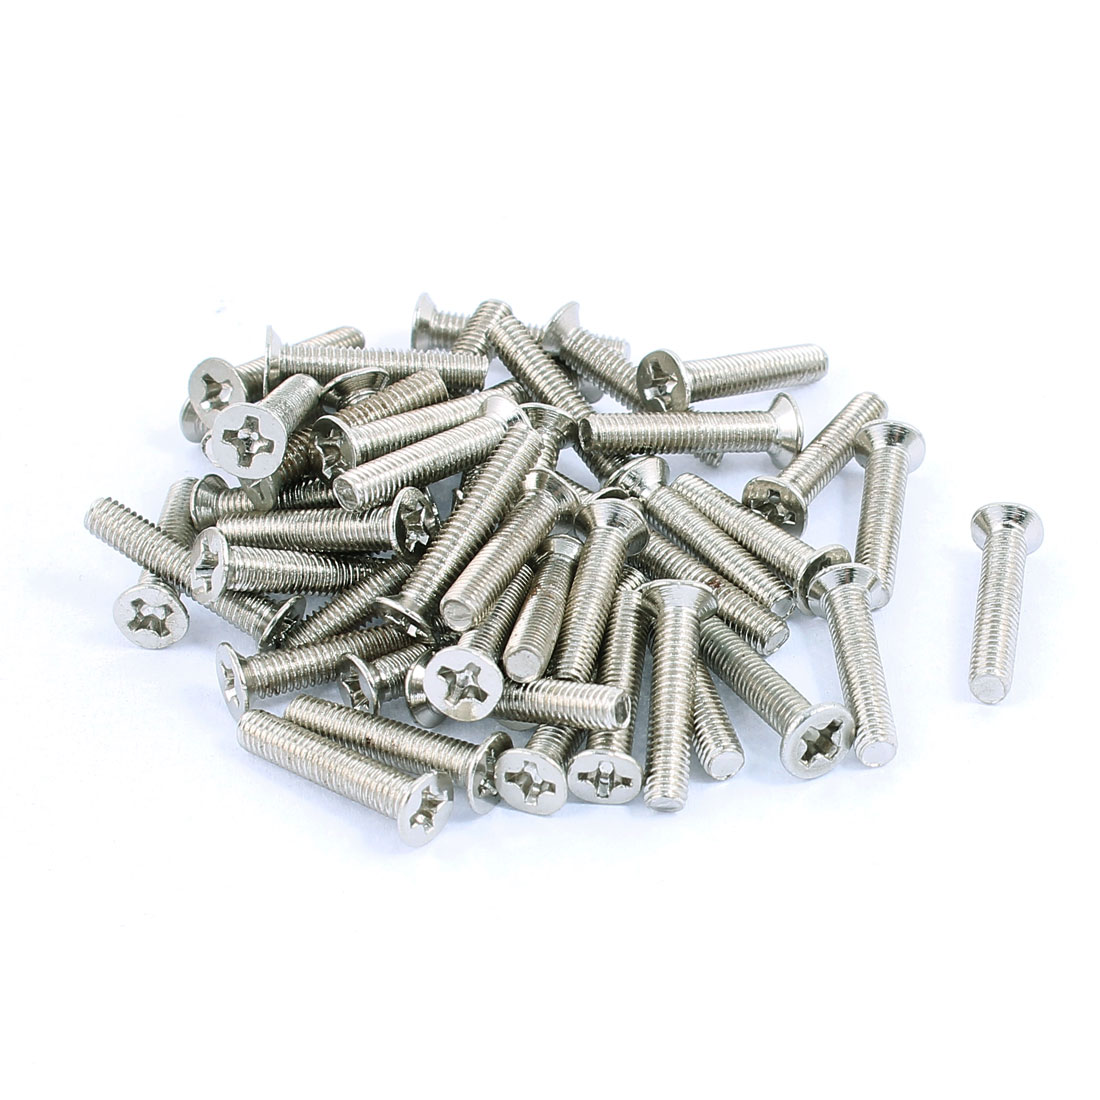 50pcs M3x16mm Stainless Steel Countersunk Flat Head Phillips Machine Screws Bolts